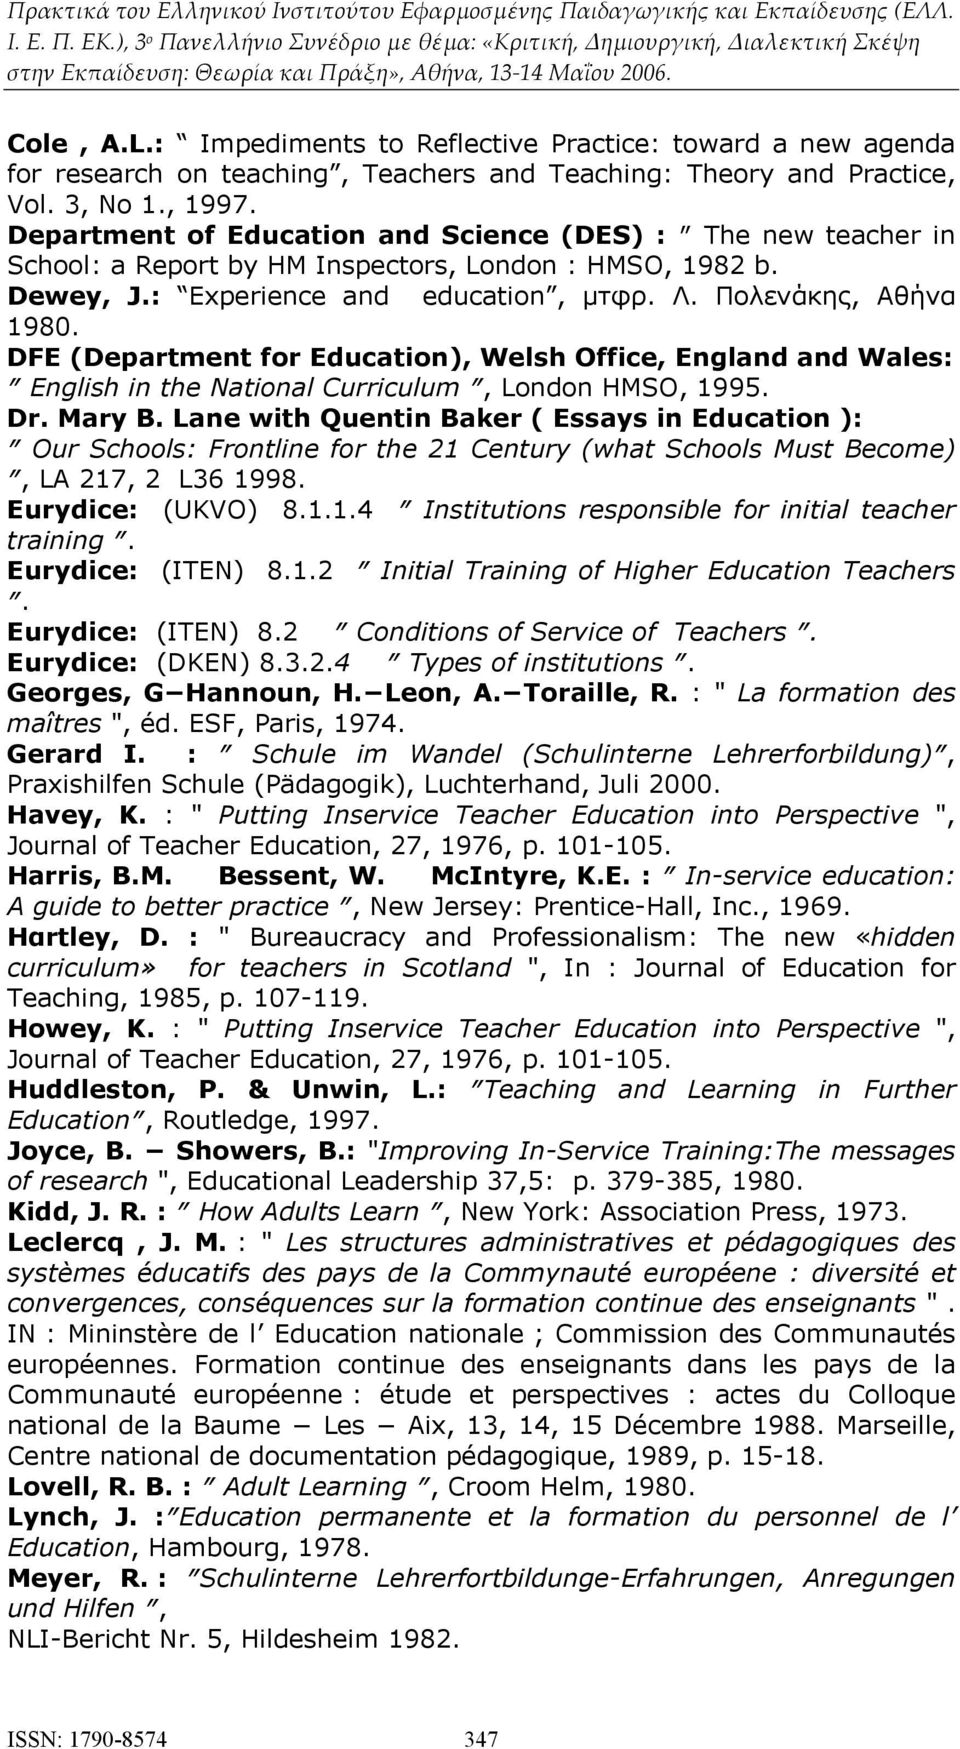 DFE (Department for Education), Welsh Office, England and Wales: English in the National Curriculum, London HMSO, 1995. Dr. Mary B.